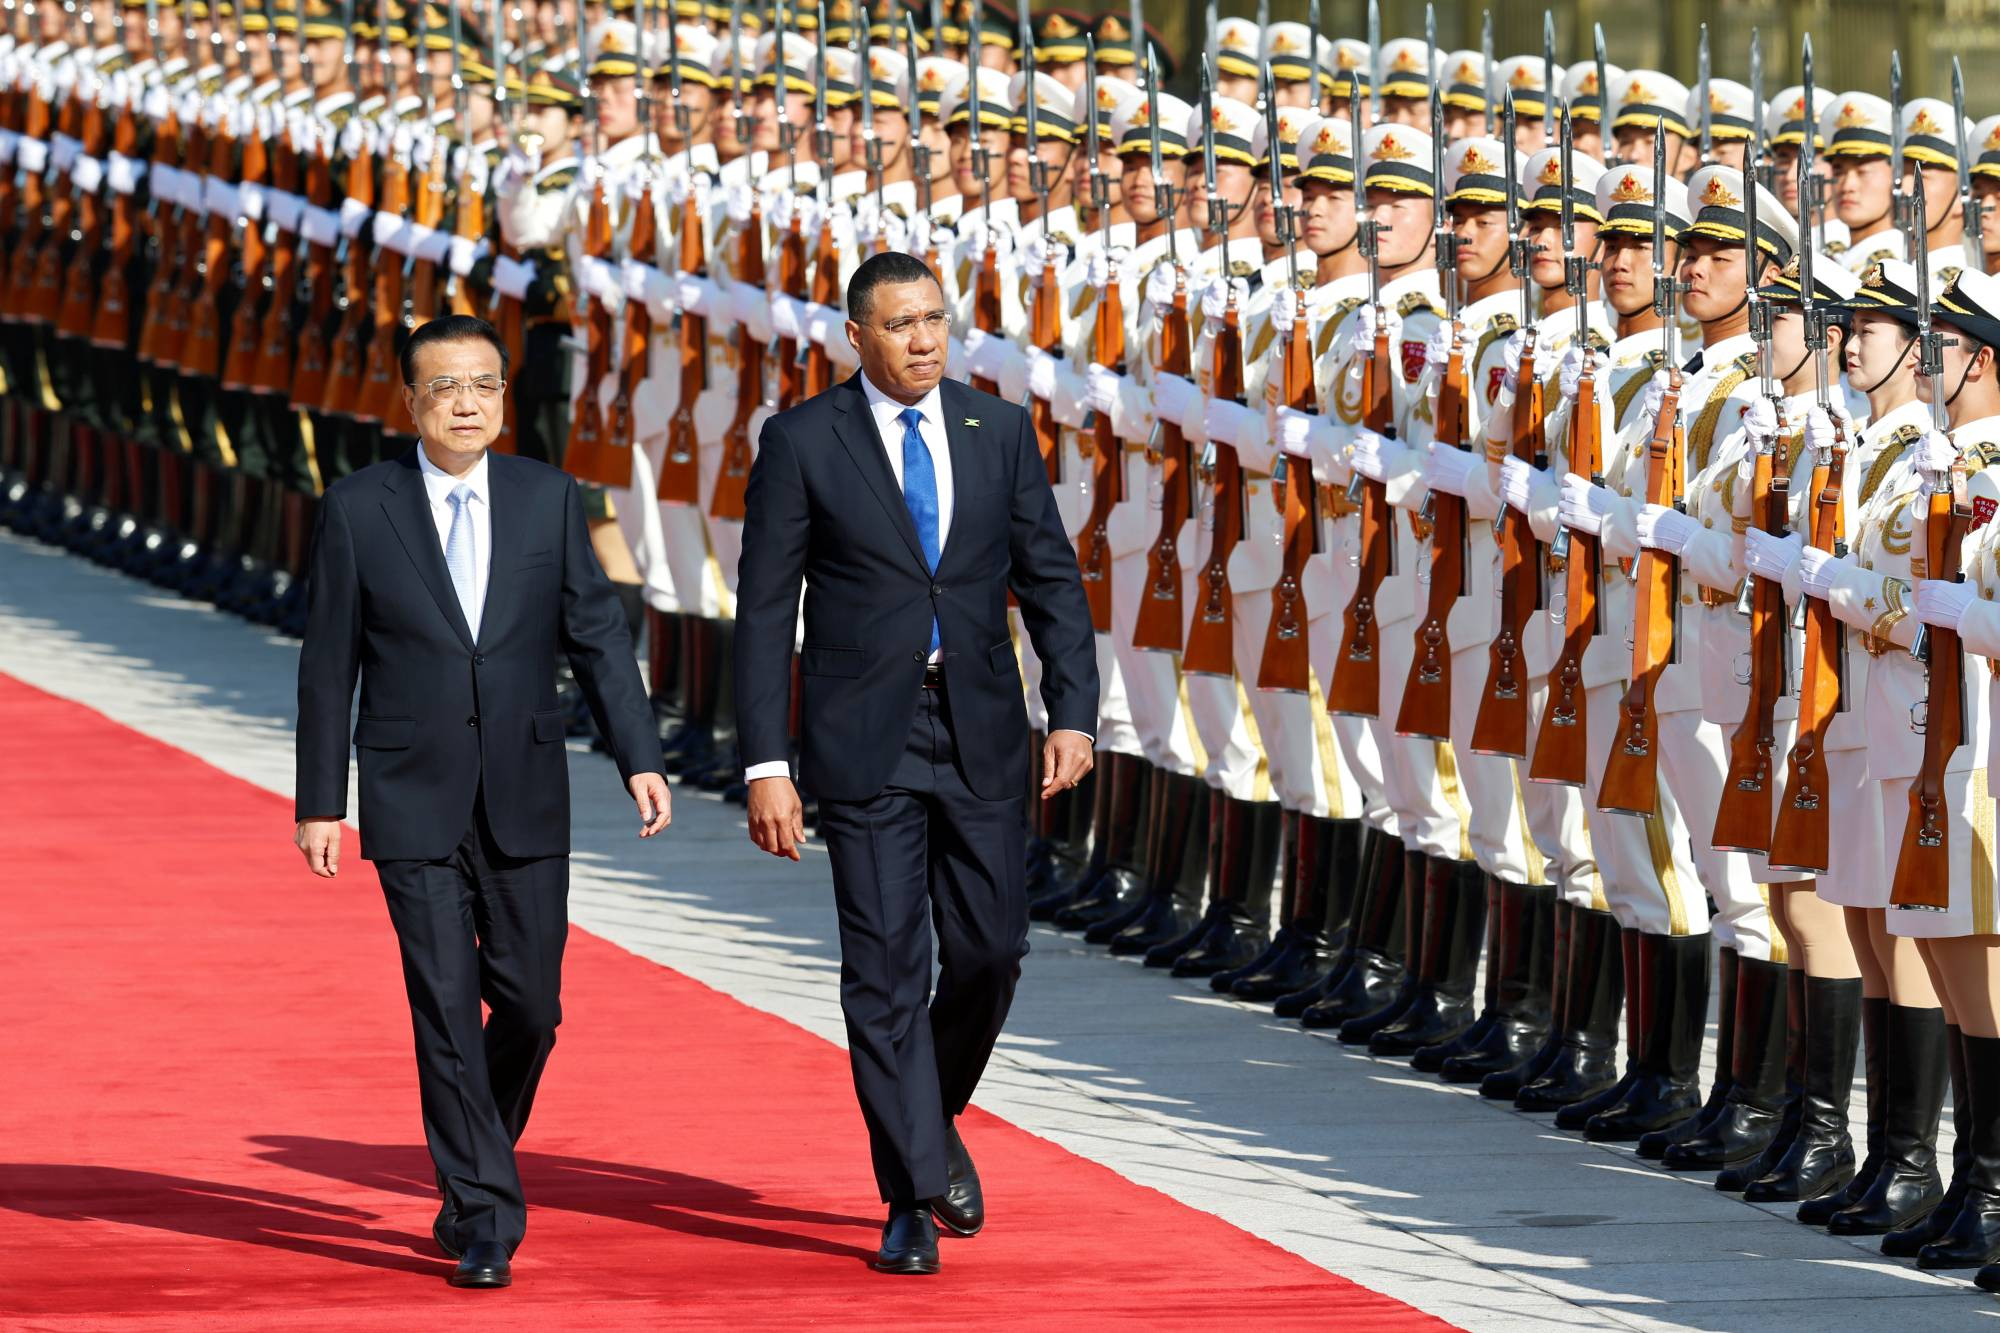 Jamaican Prime Minister Andrew Holness reviews the honor guard during a welcome ceremony with Chinese Premier Li Keqiang outside the Great Hall of the People in Beijing in November 2019.  | REUTERS